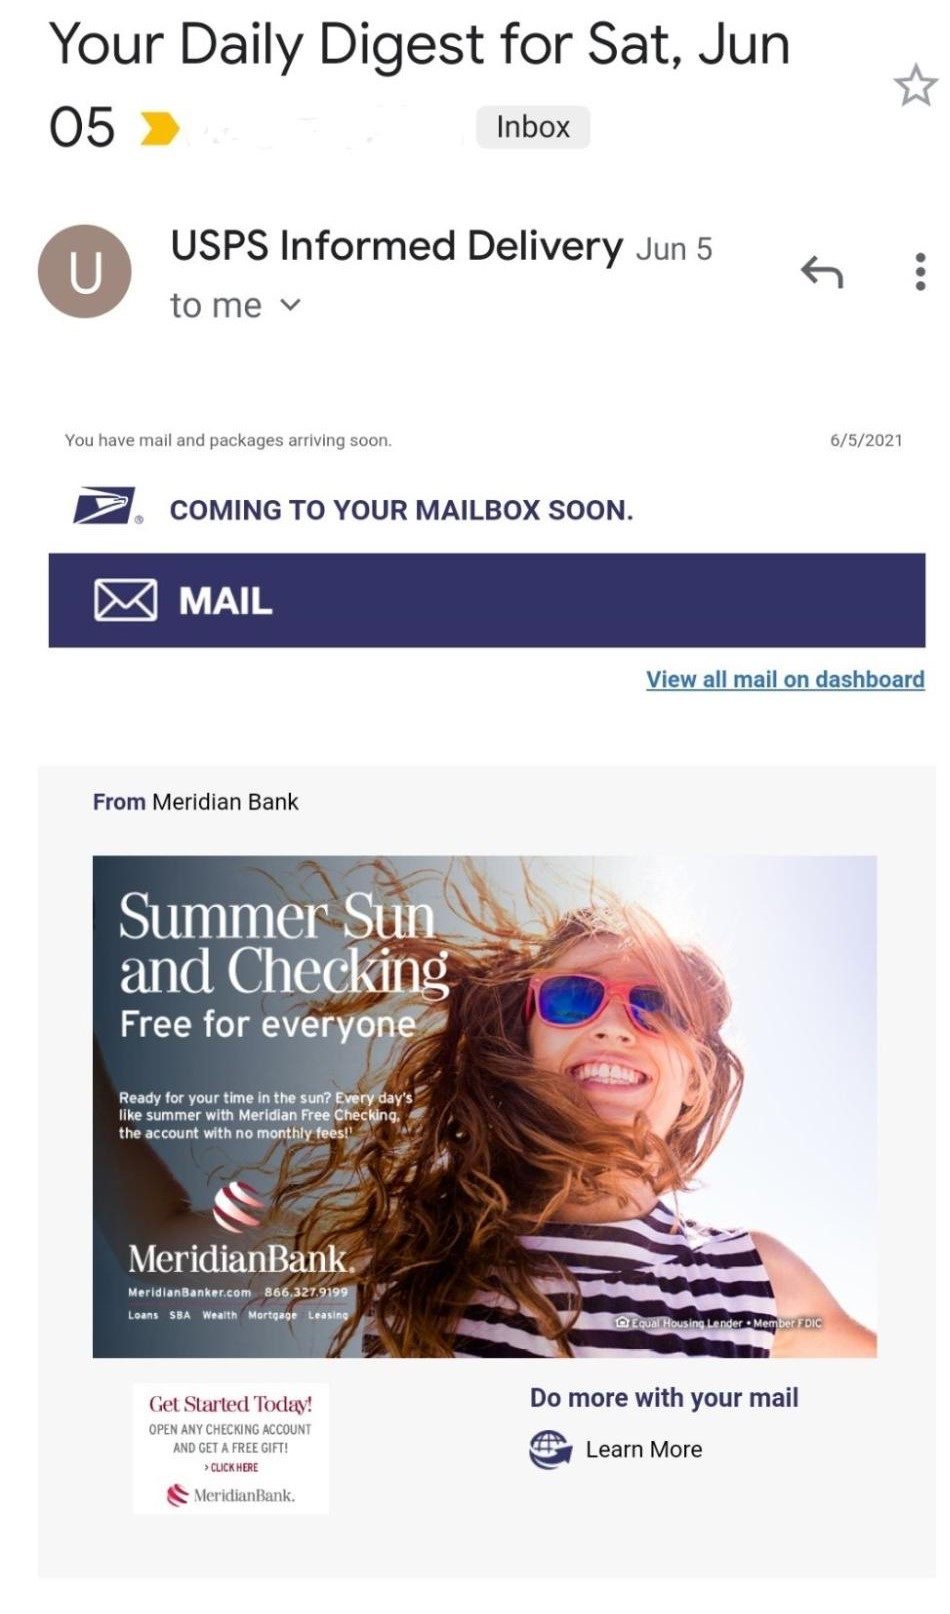 Meridian Bank informed delivery example